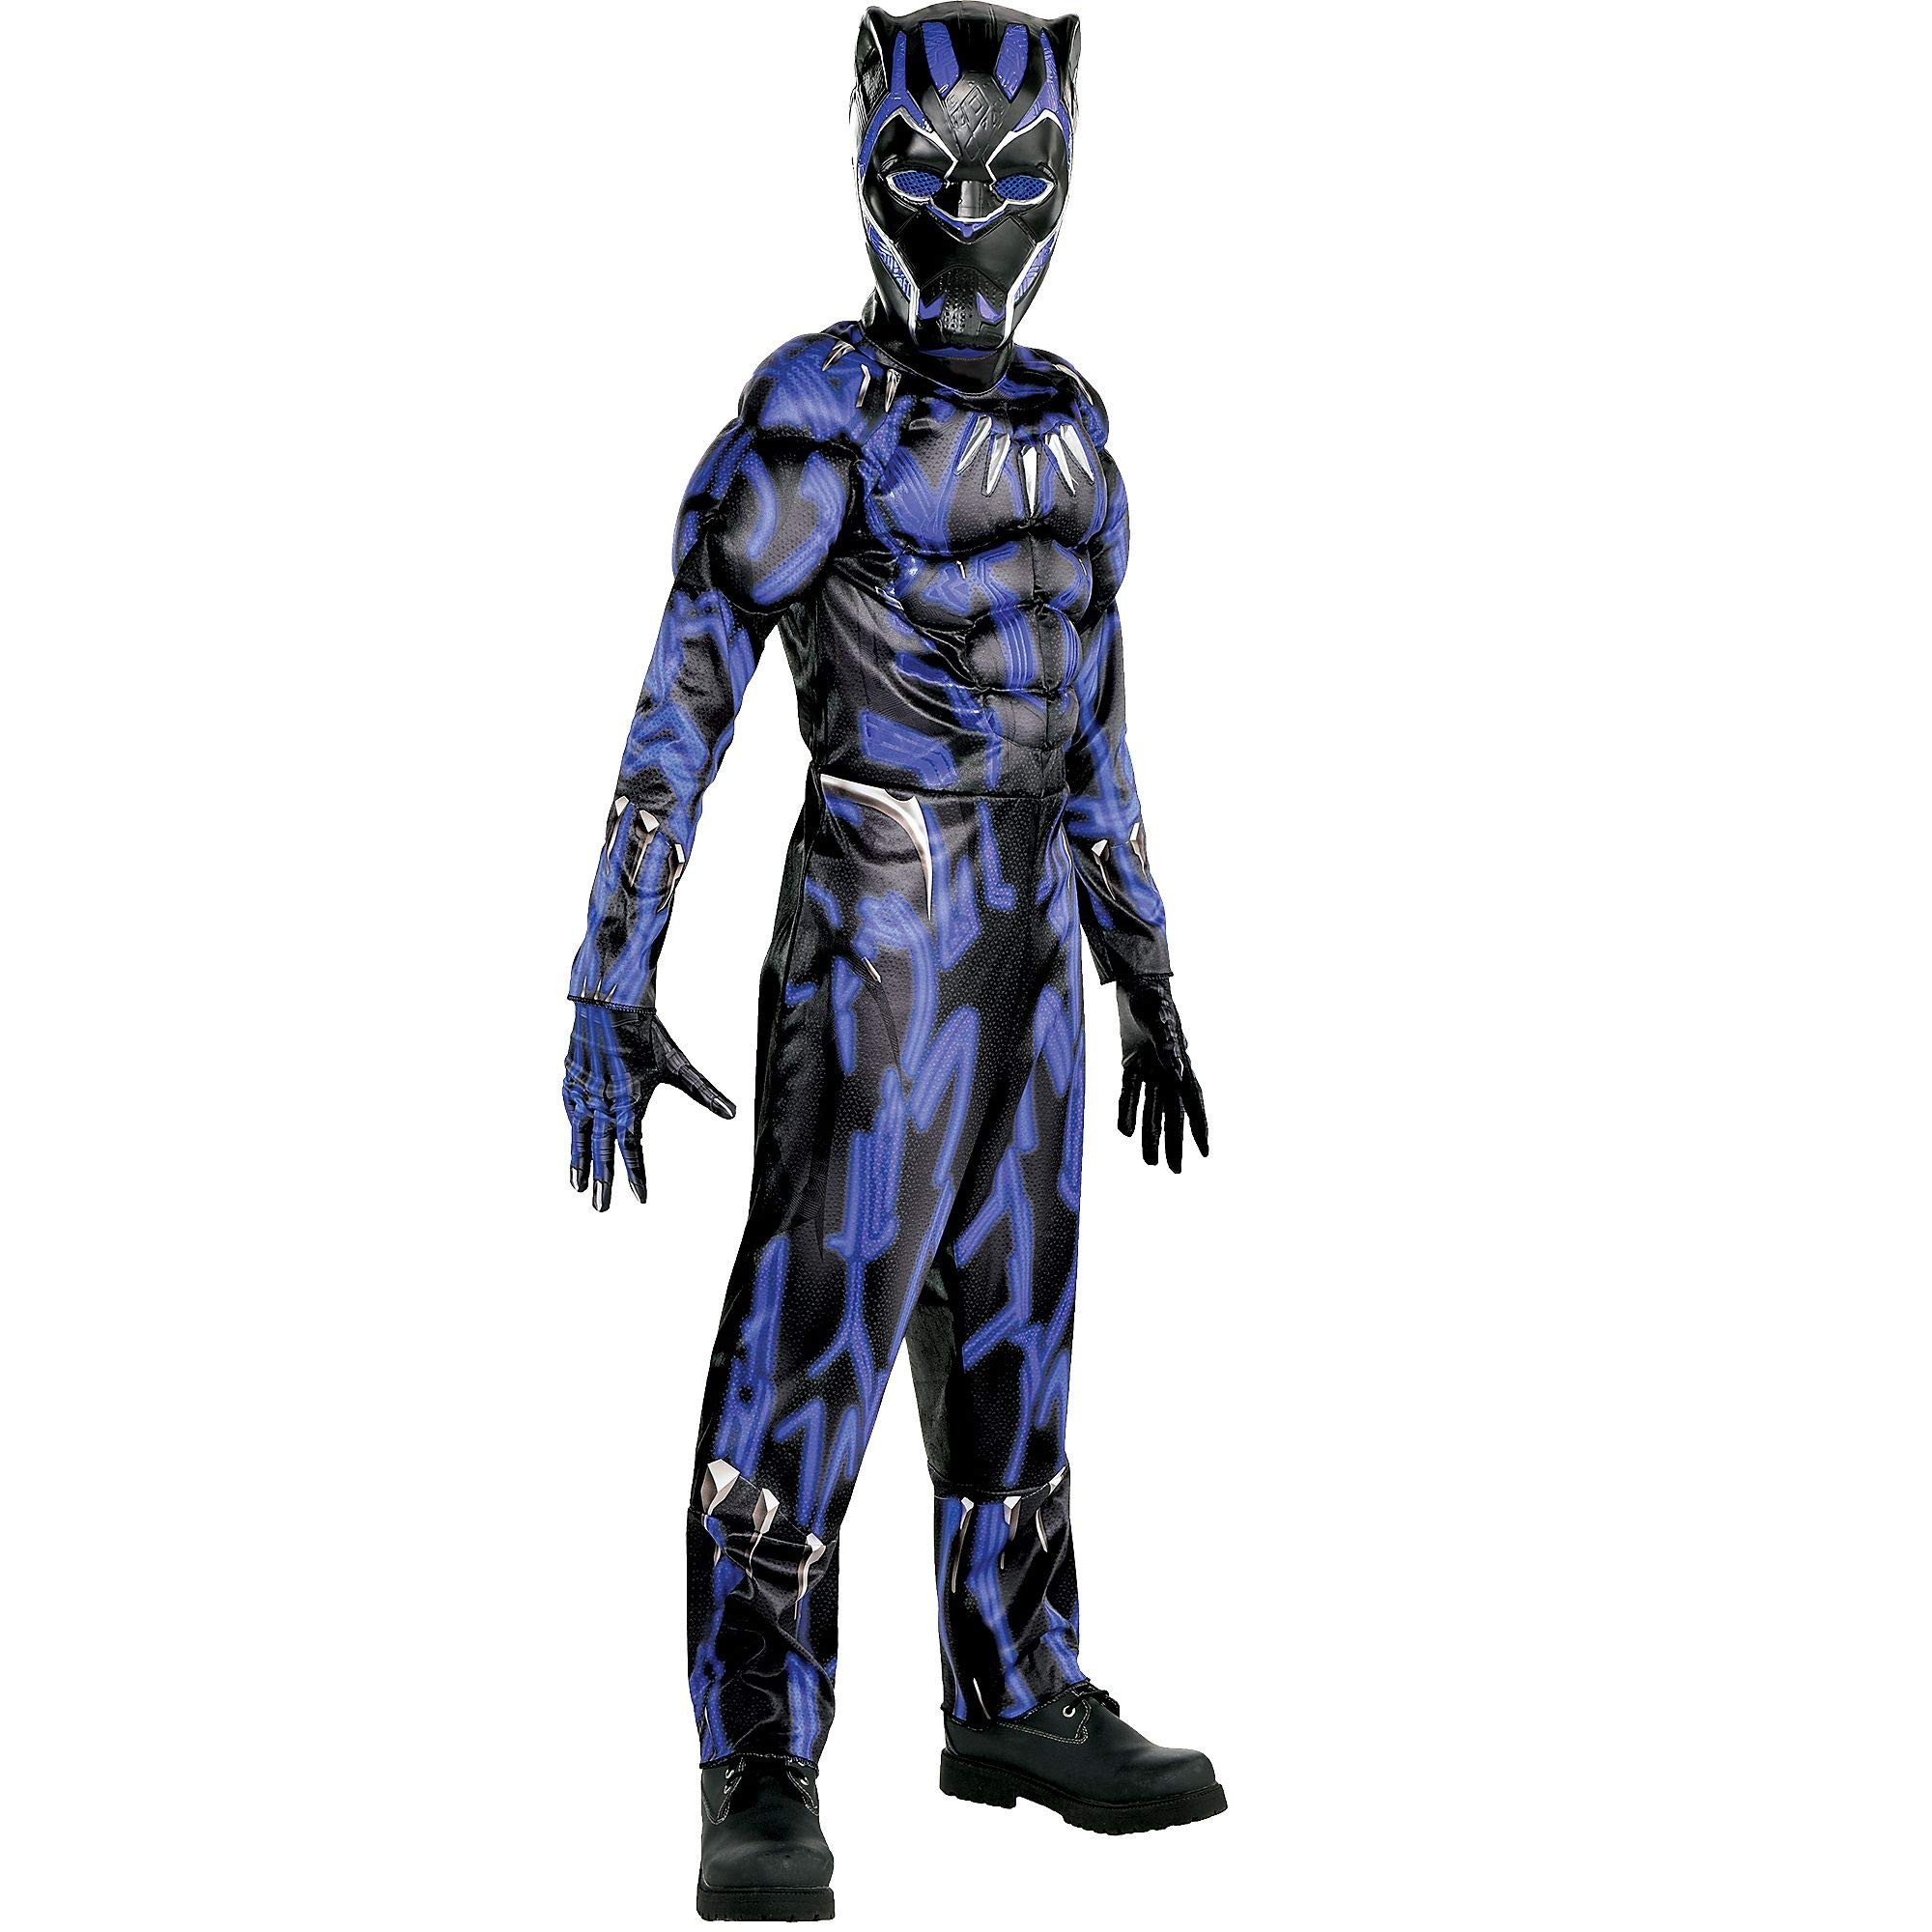 Suit Yourself Black Panther Muscle Halloween Costume for Boys, Black Panther Movie, Medium, Includes Accessories